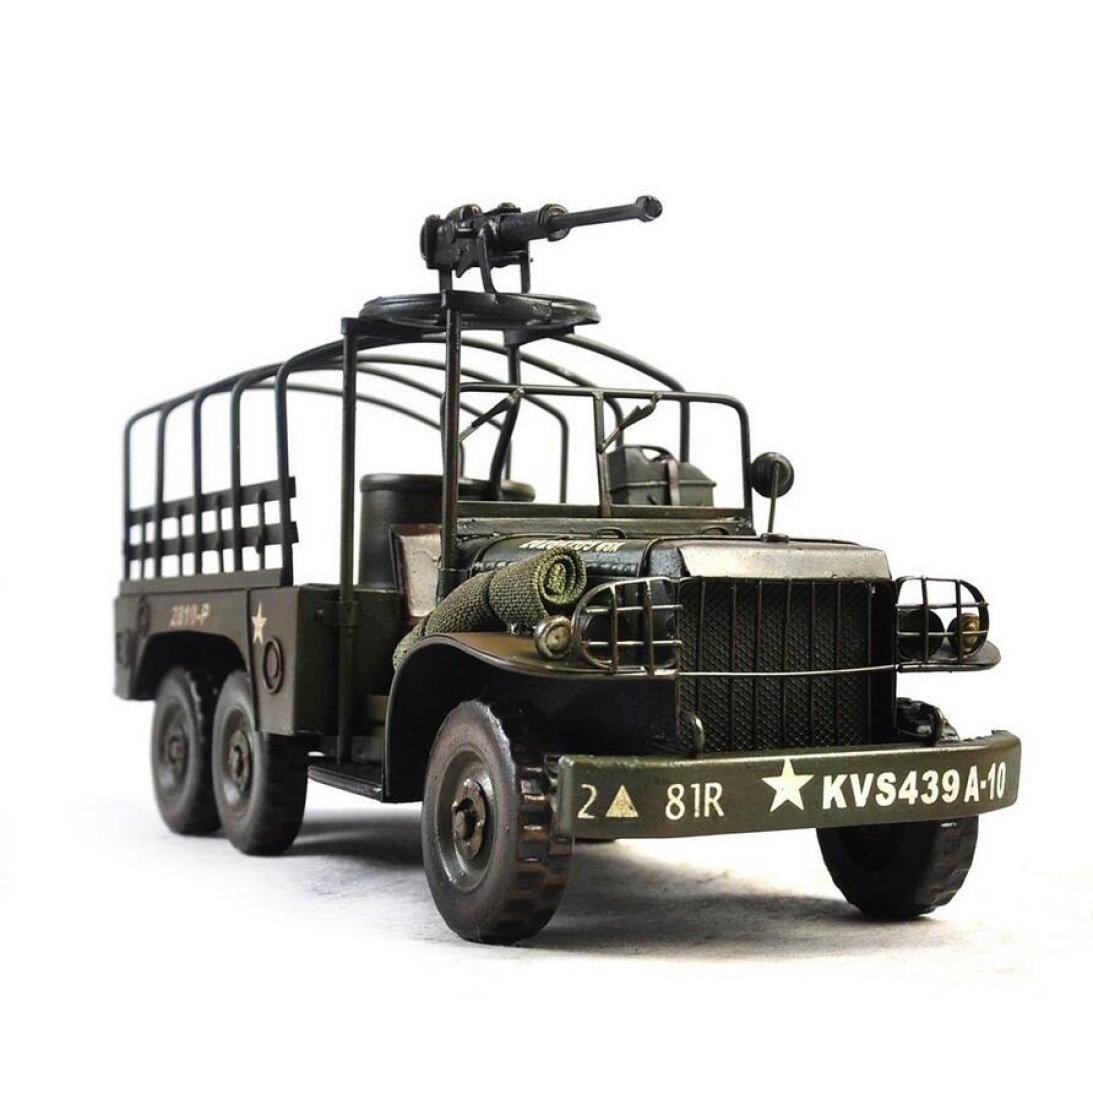 GL&G manual Retro Iron art military vehicle Home Decorations Creative Wedding Gifts Crafts bar Cafe Tabletop Scenes military Collectible Vehicles Ornaments Keepsakes,371419cm